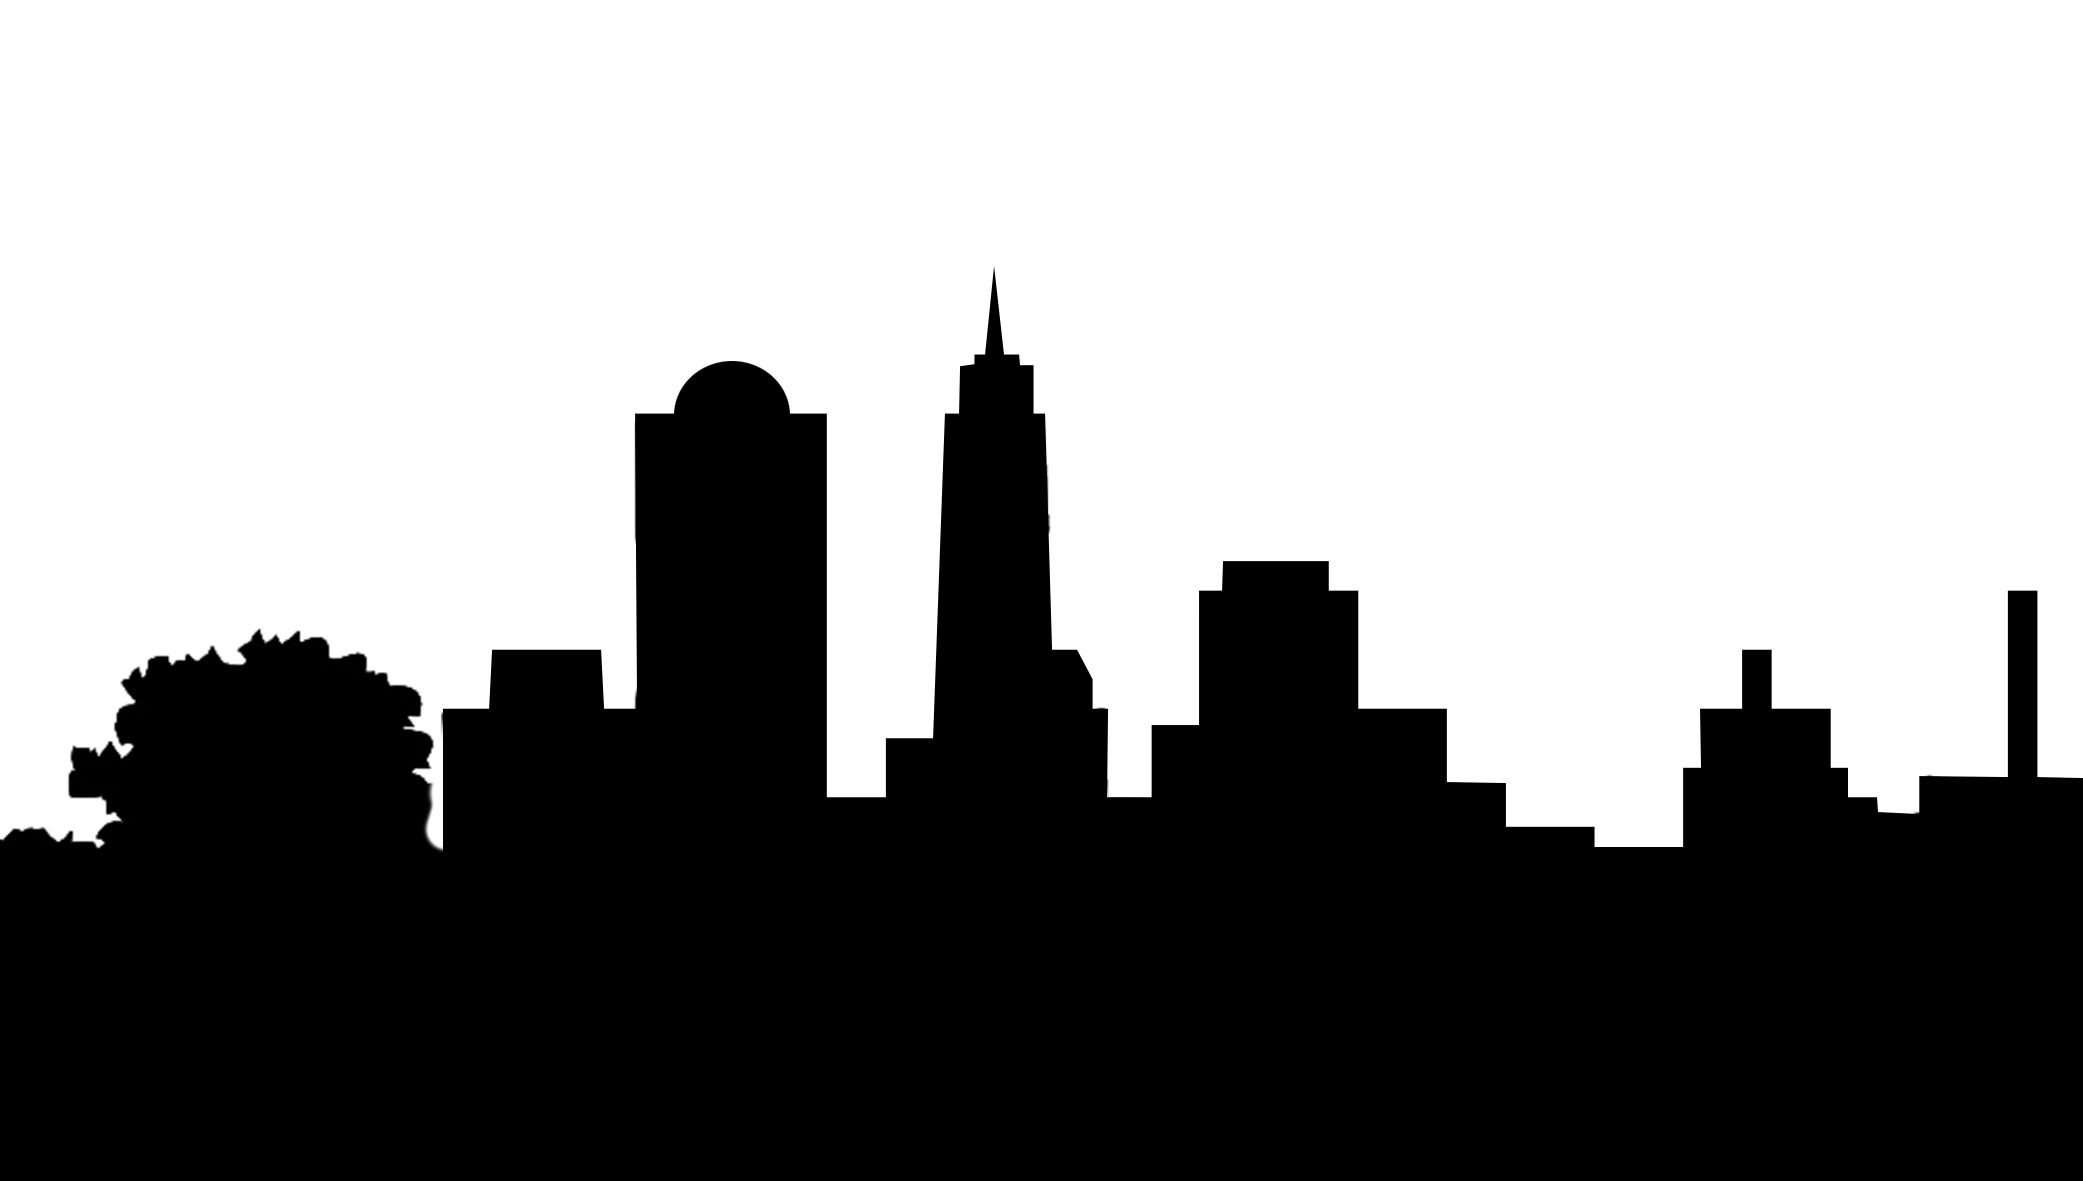 chicago city skyline silhouette at getdrawings com free for rh getdrawings com london skyline clipart skyline clipart black and white